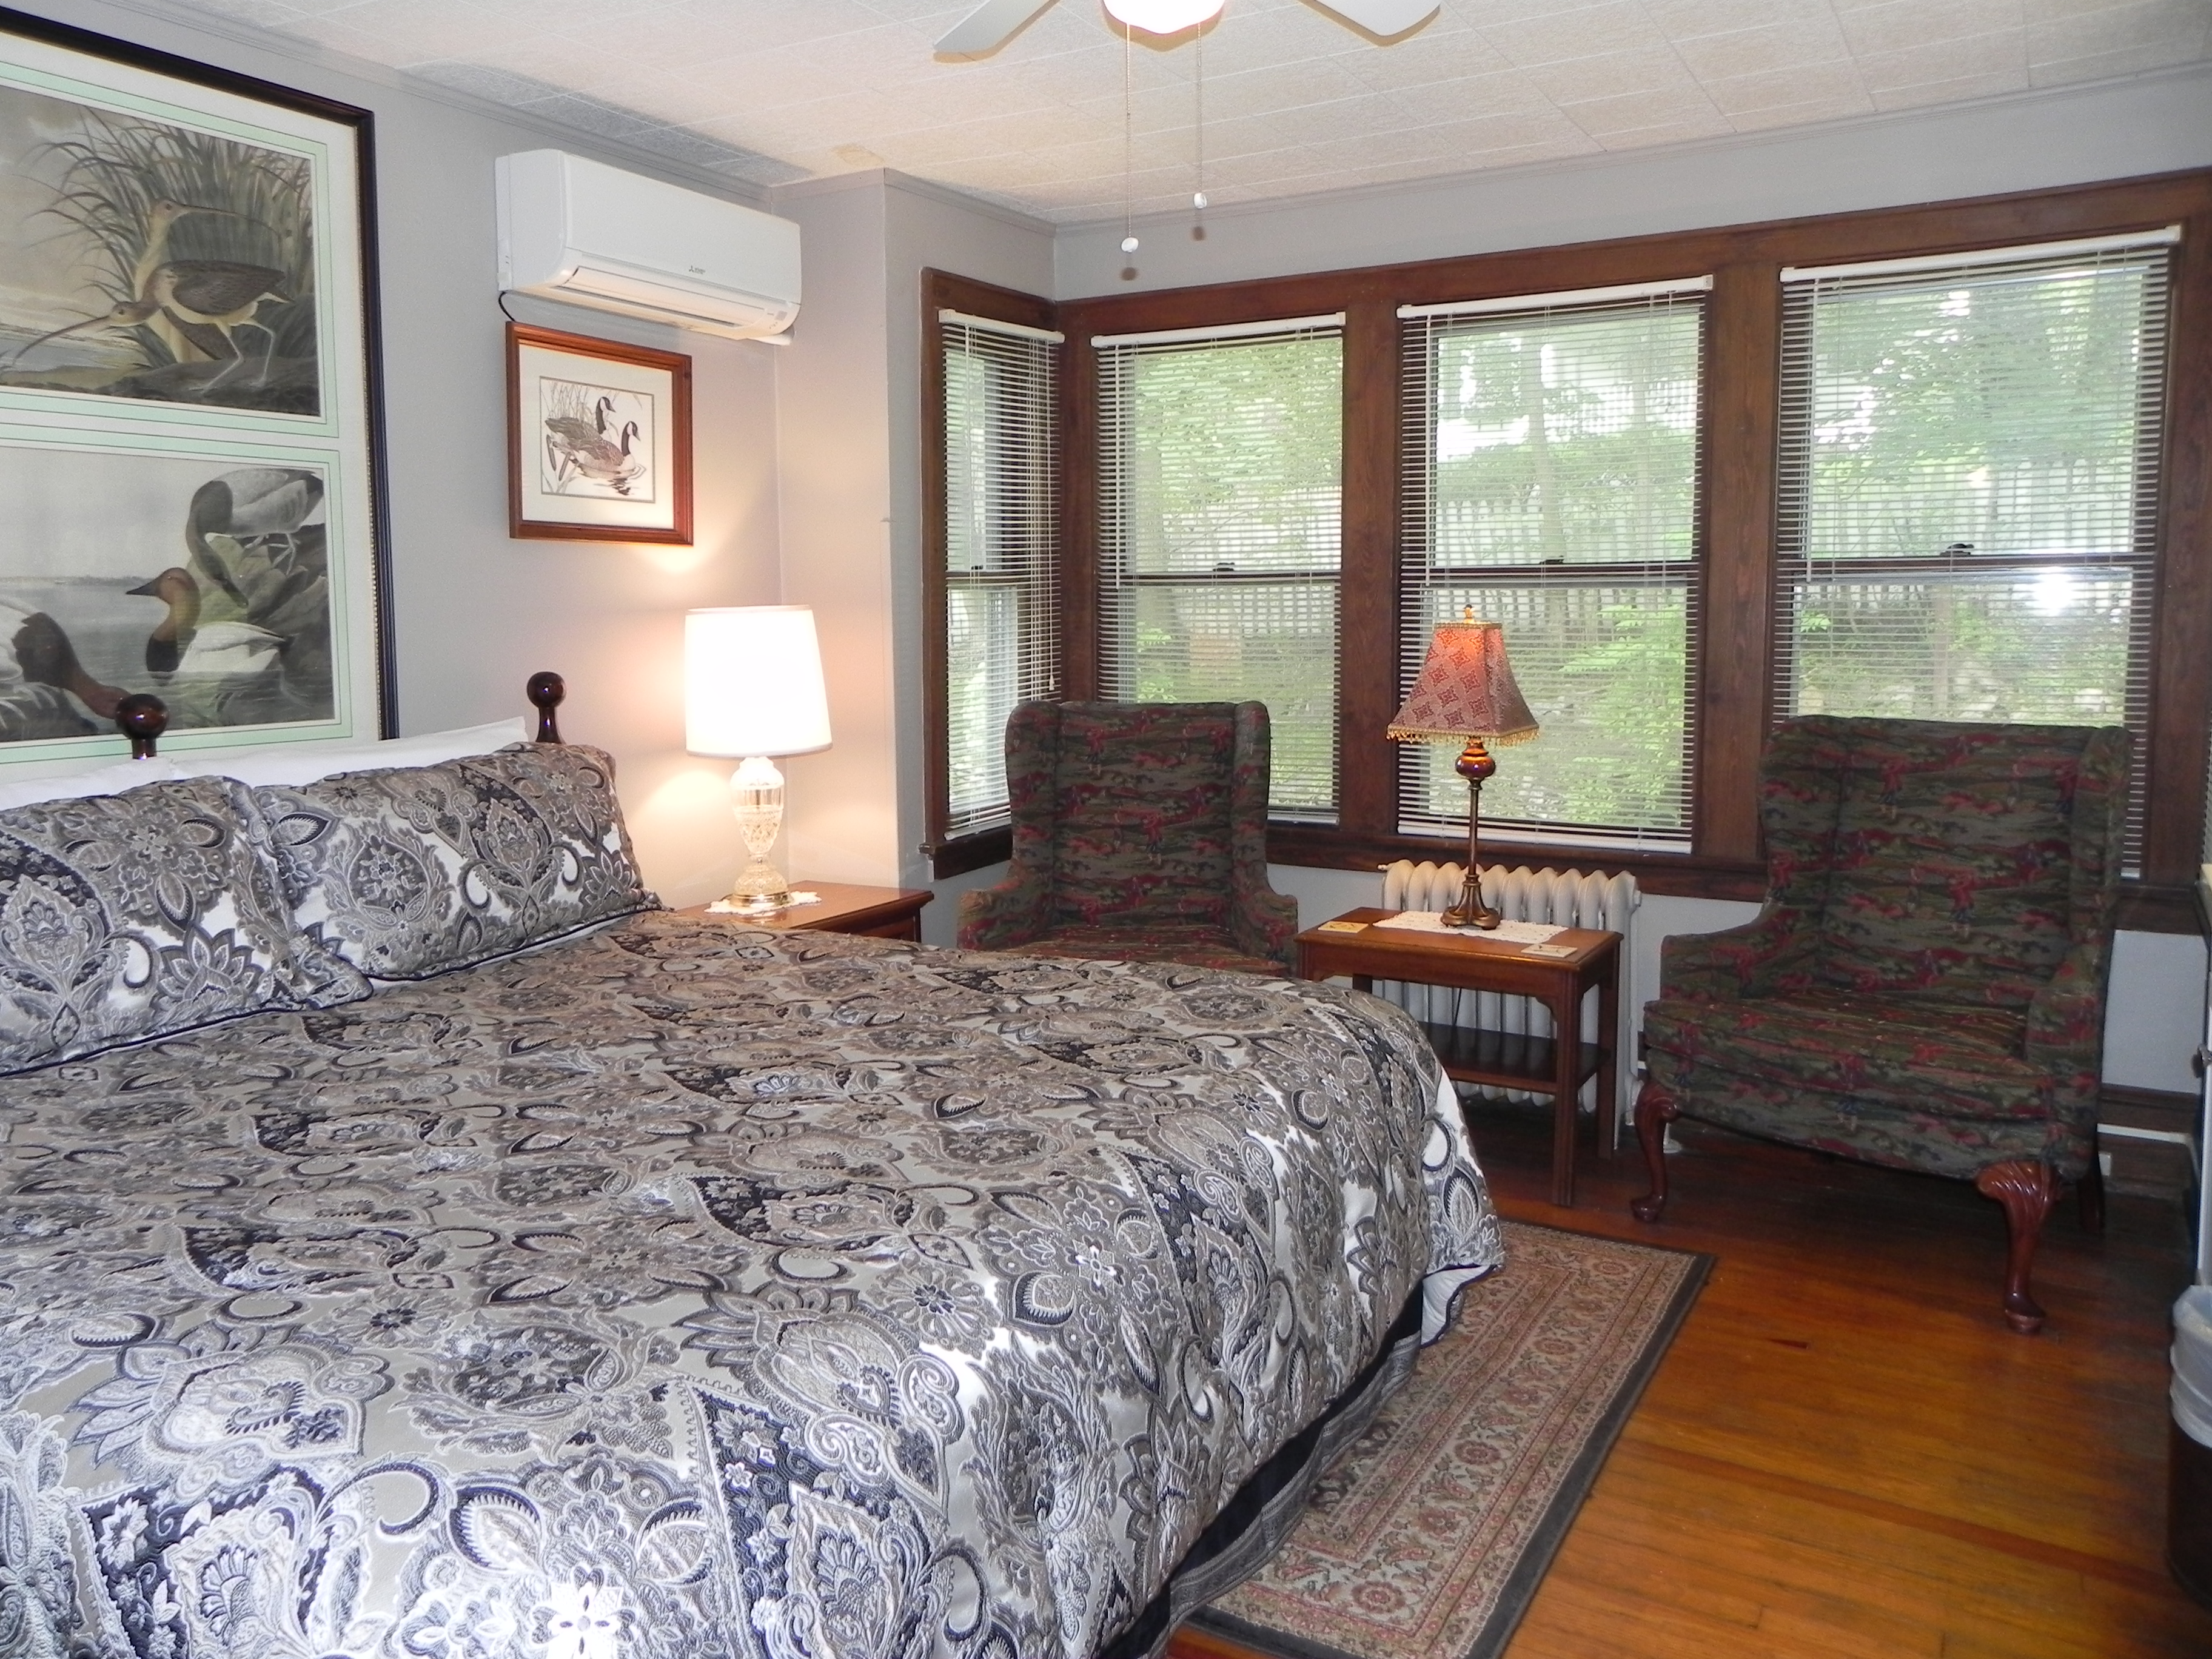 King size bed with silver and black comforter, hardwood floor, two armchairs and 5 windows overlooking back yard.